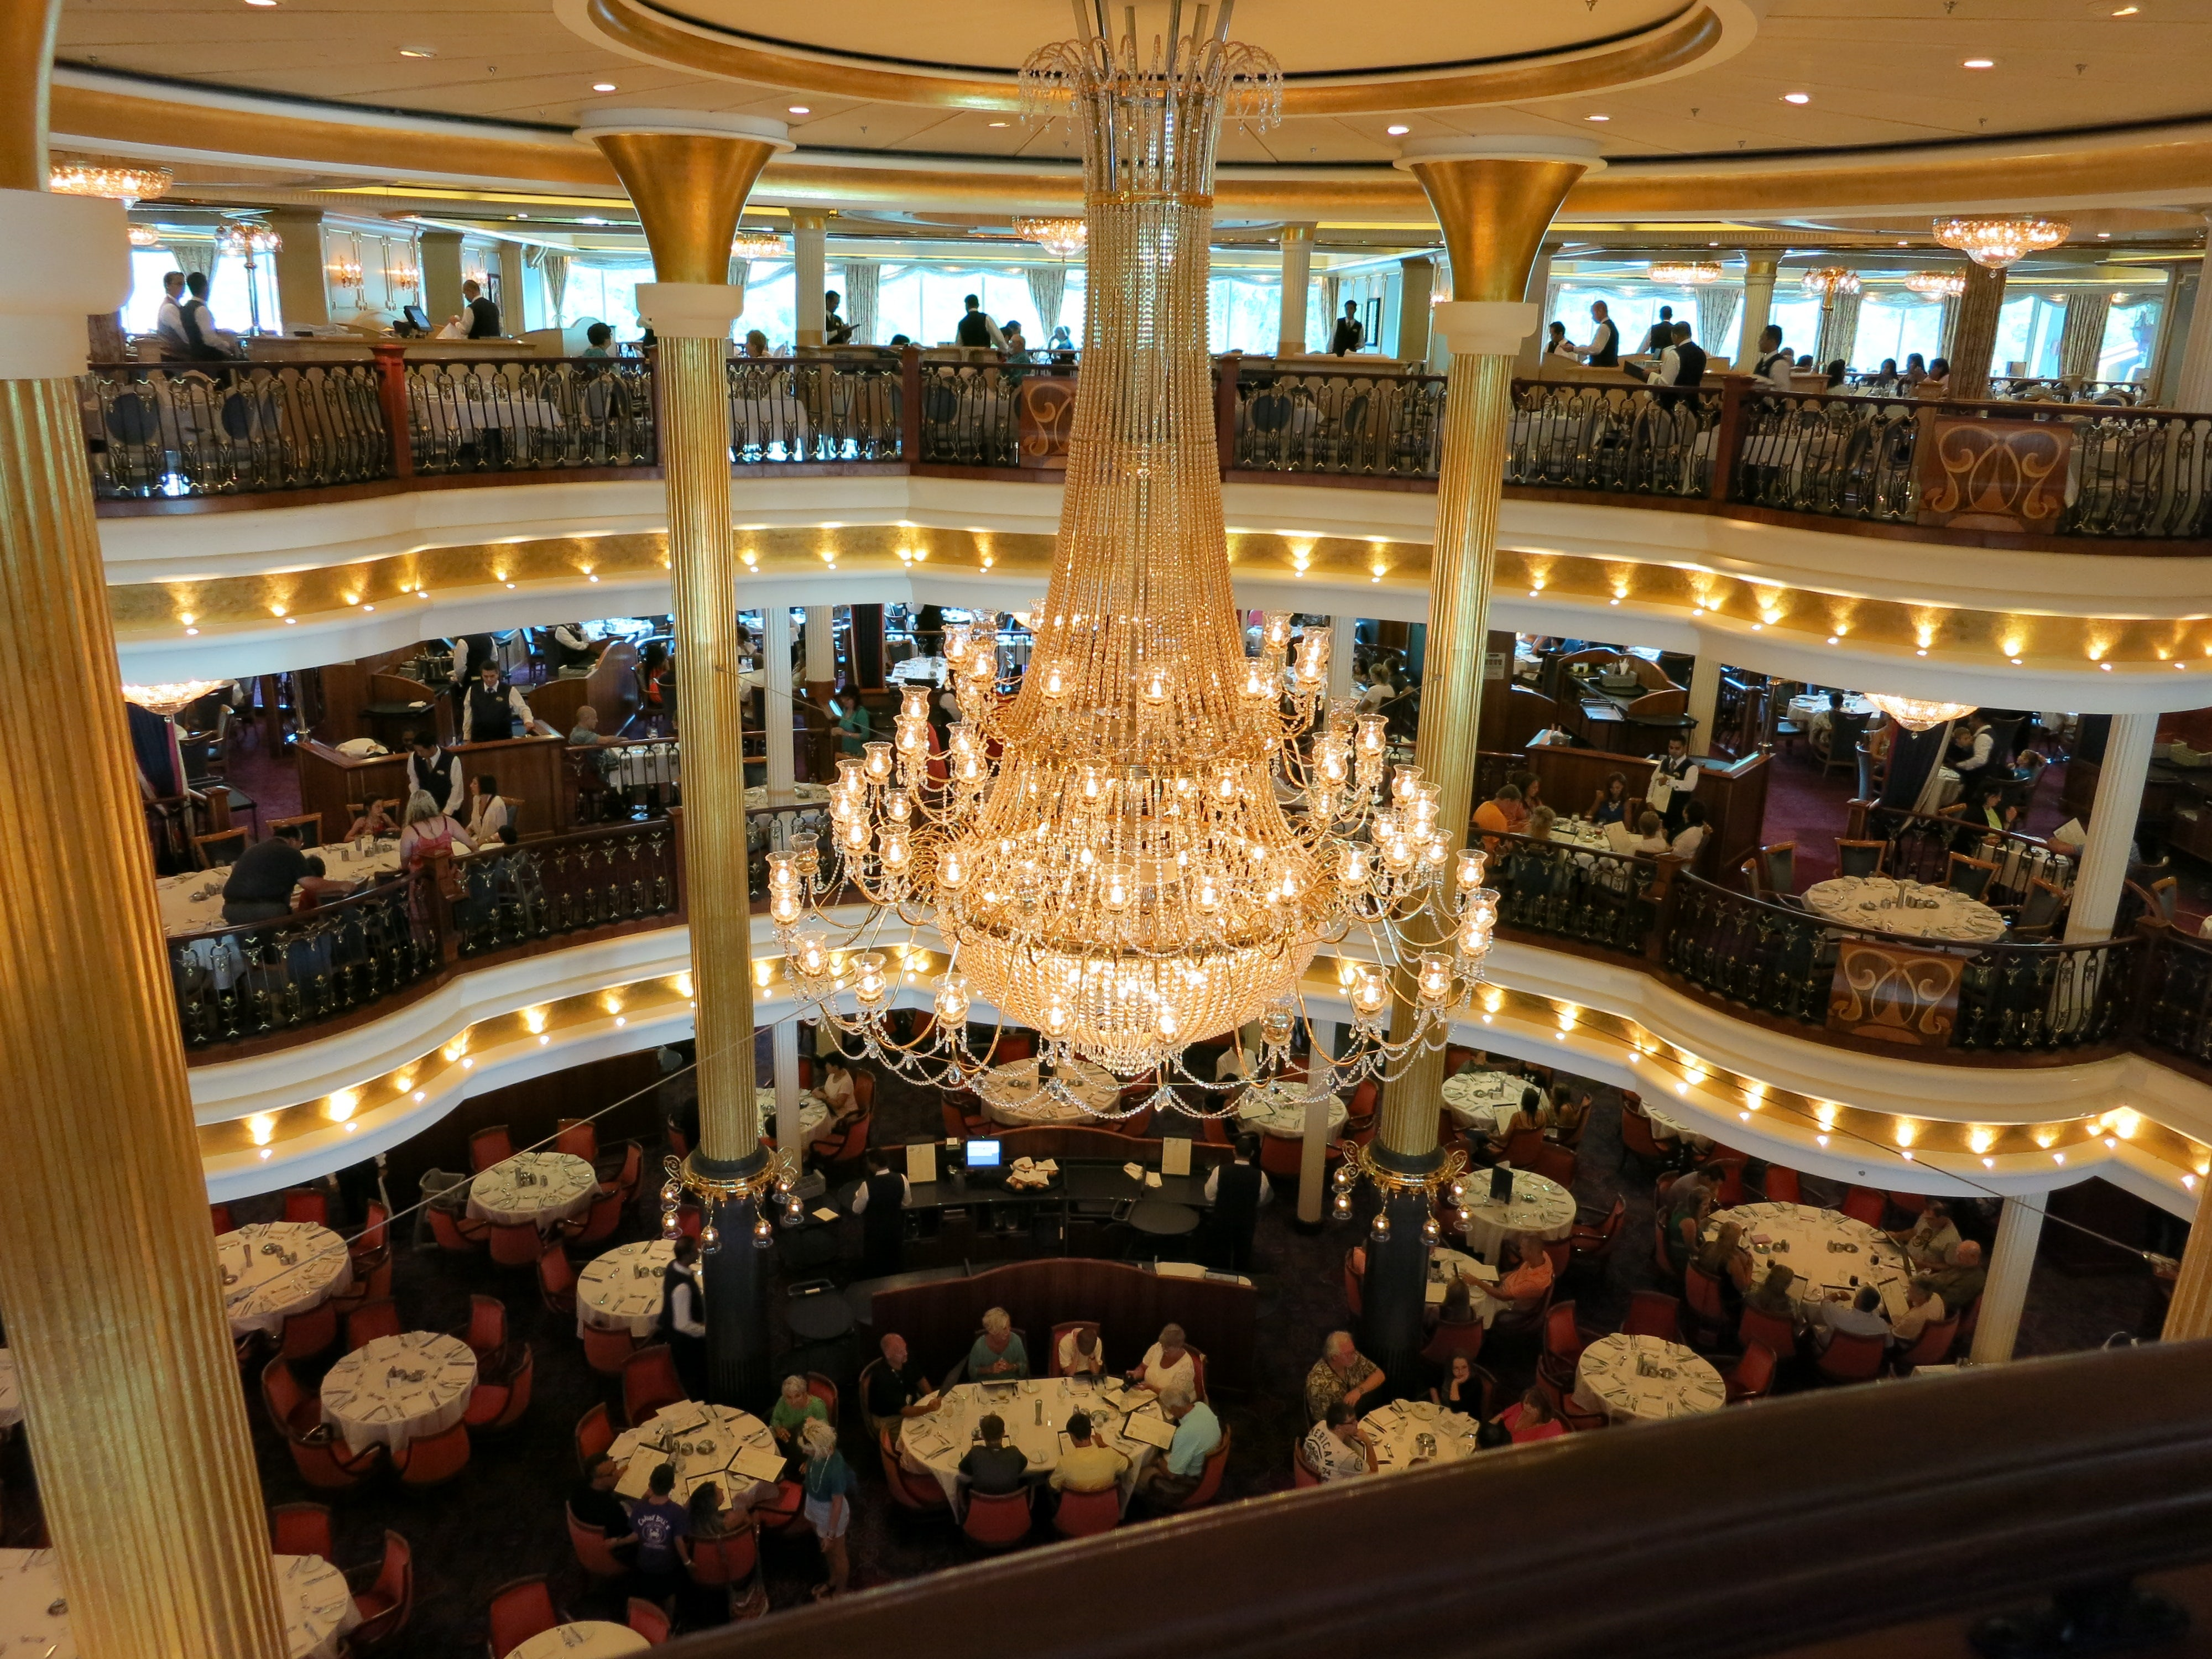 A Trip on the Royal Caribbean's Freedom of the Seas